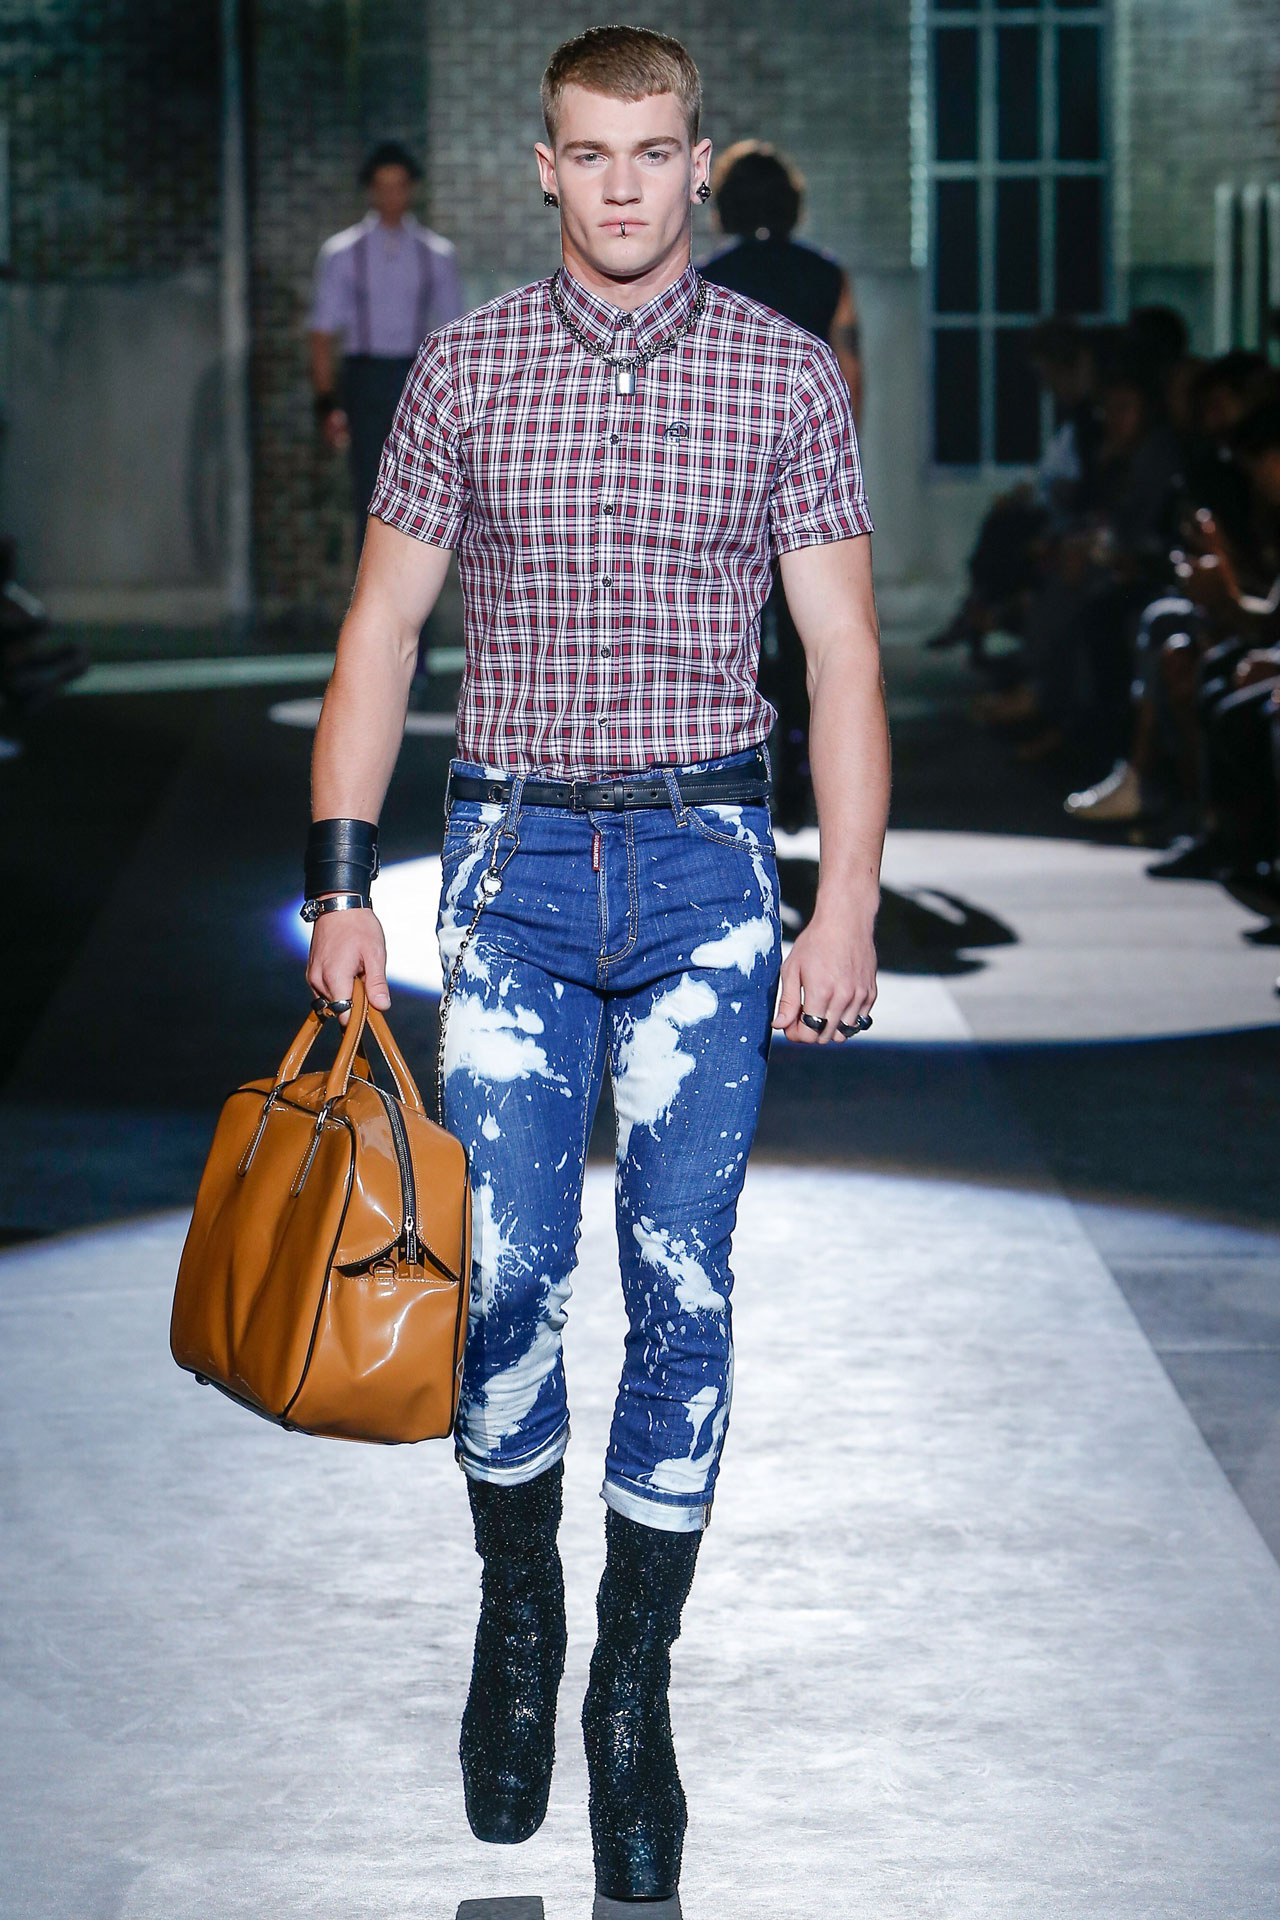 xdsquared3